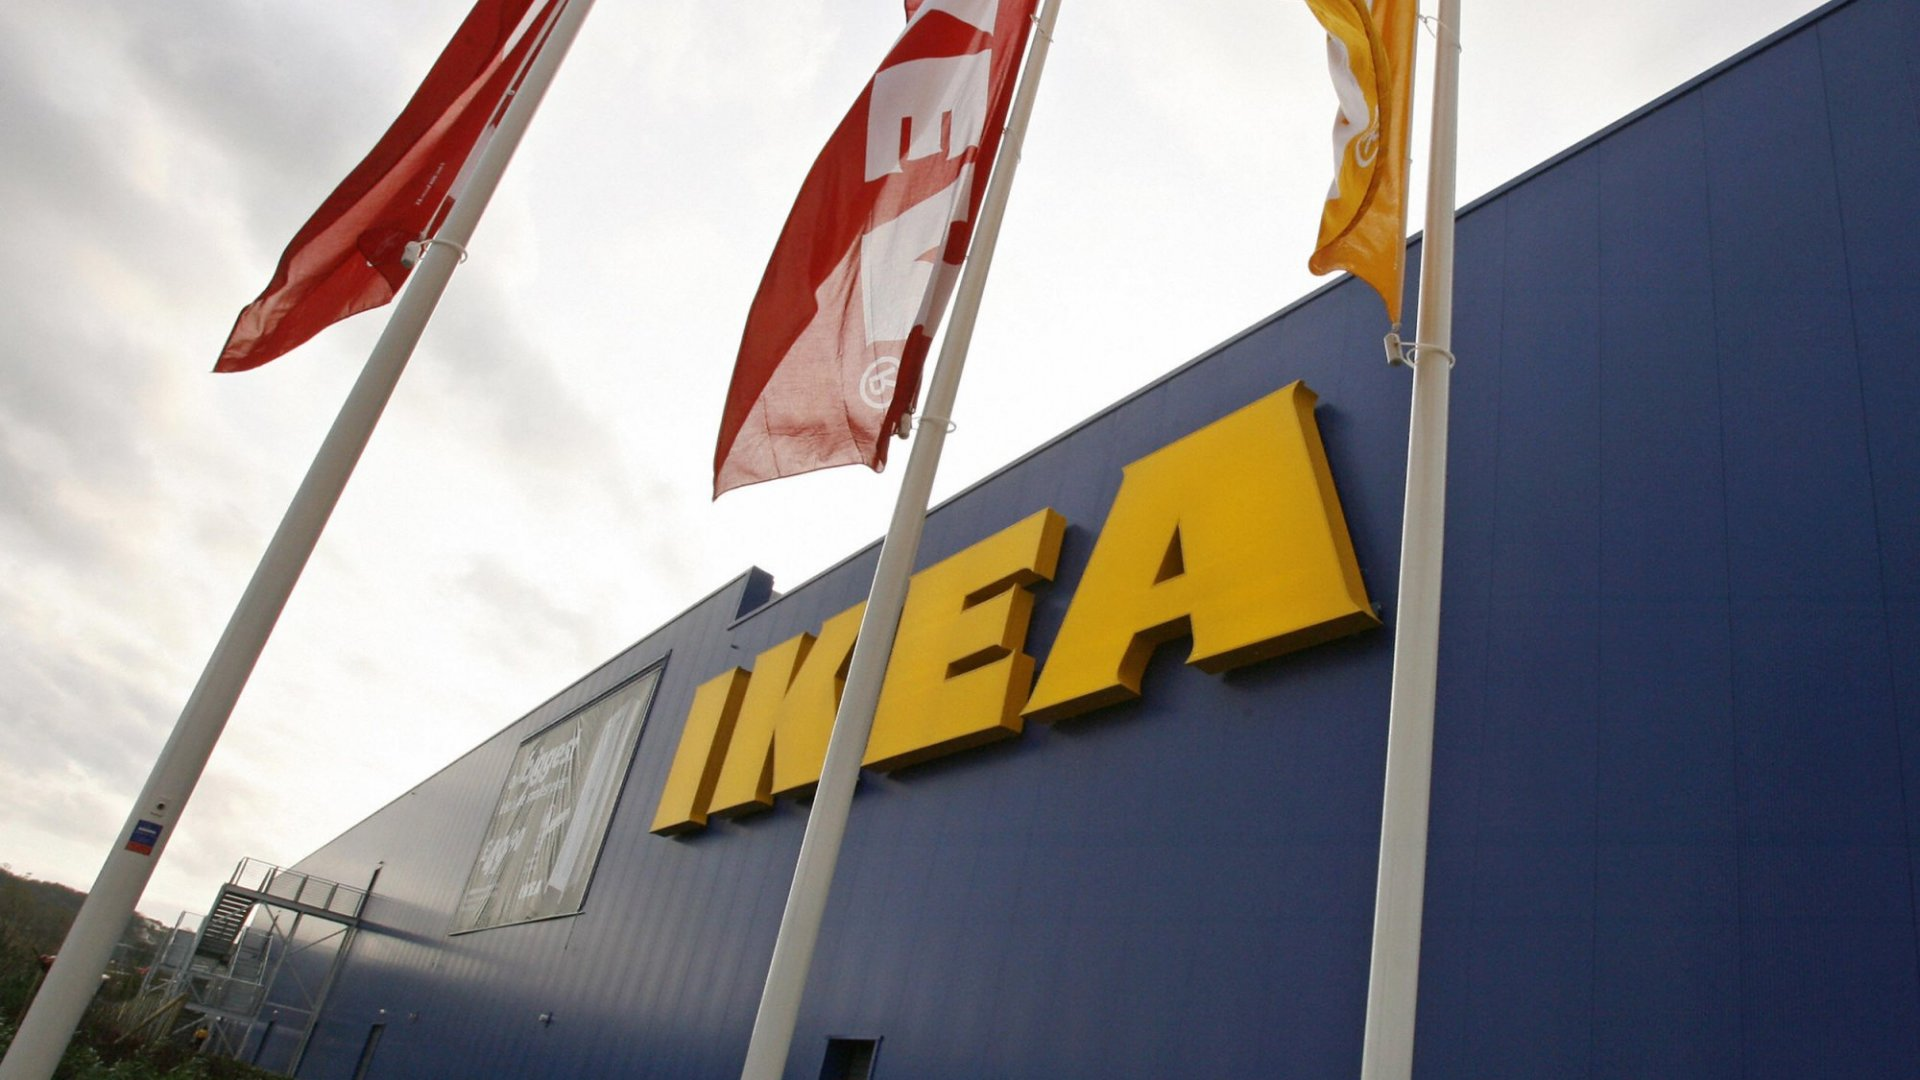 5 Lessons You Should Learn From Ikea's (Surprisingly Revolutionary) Company Culture